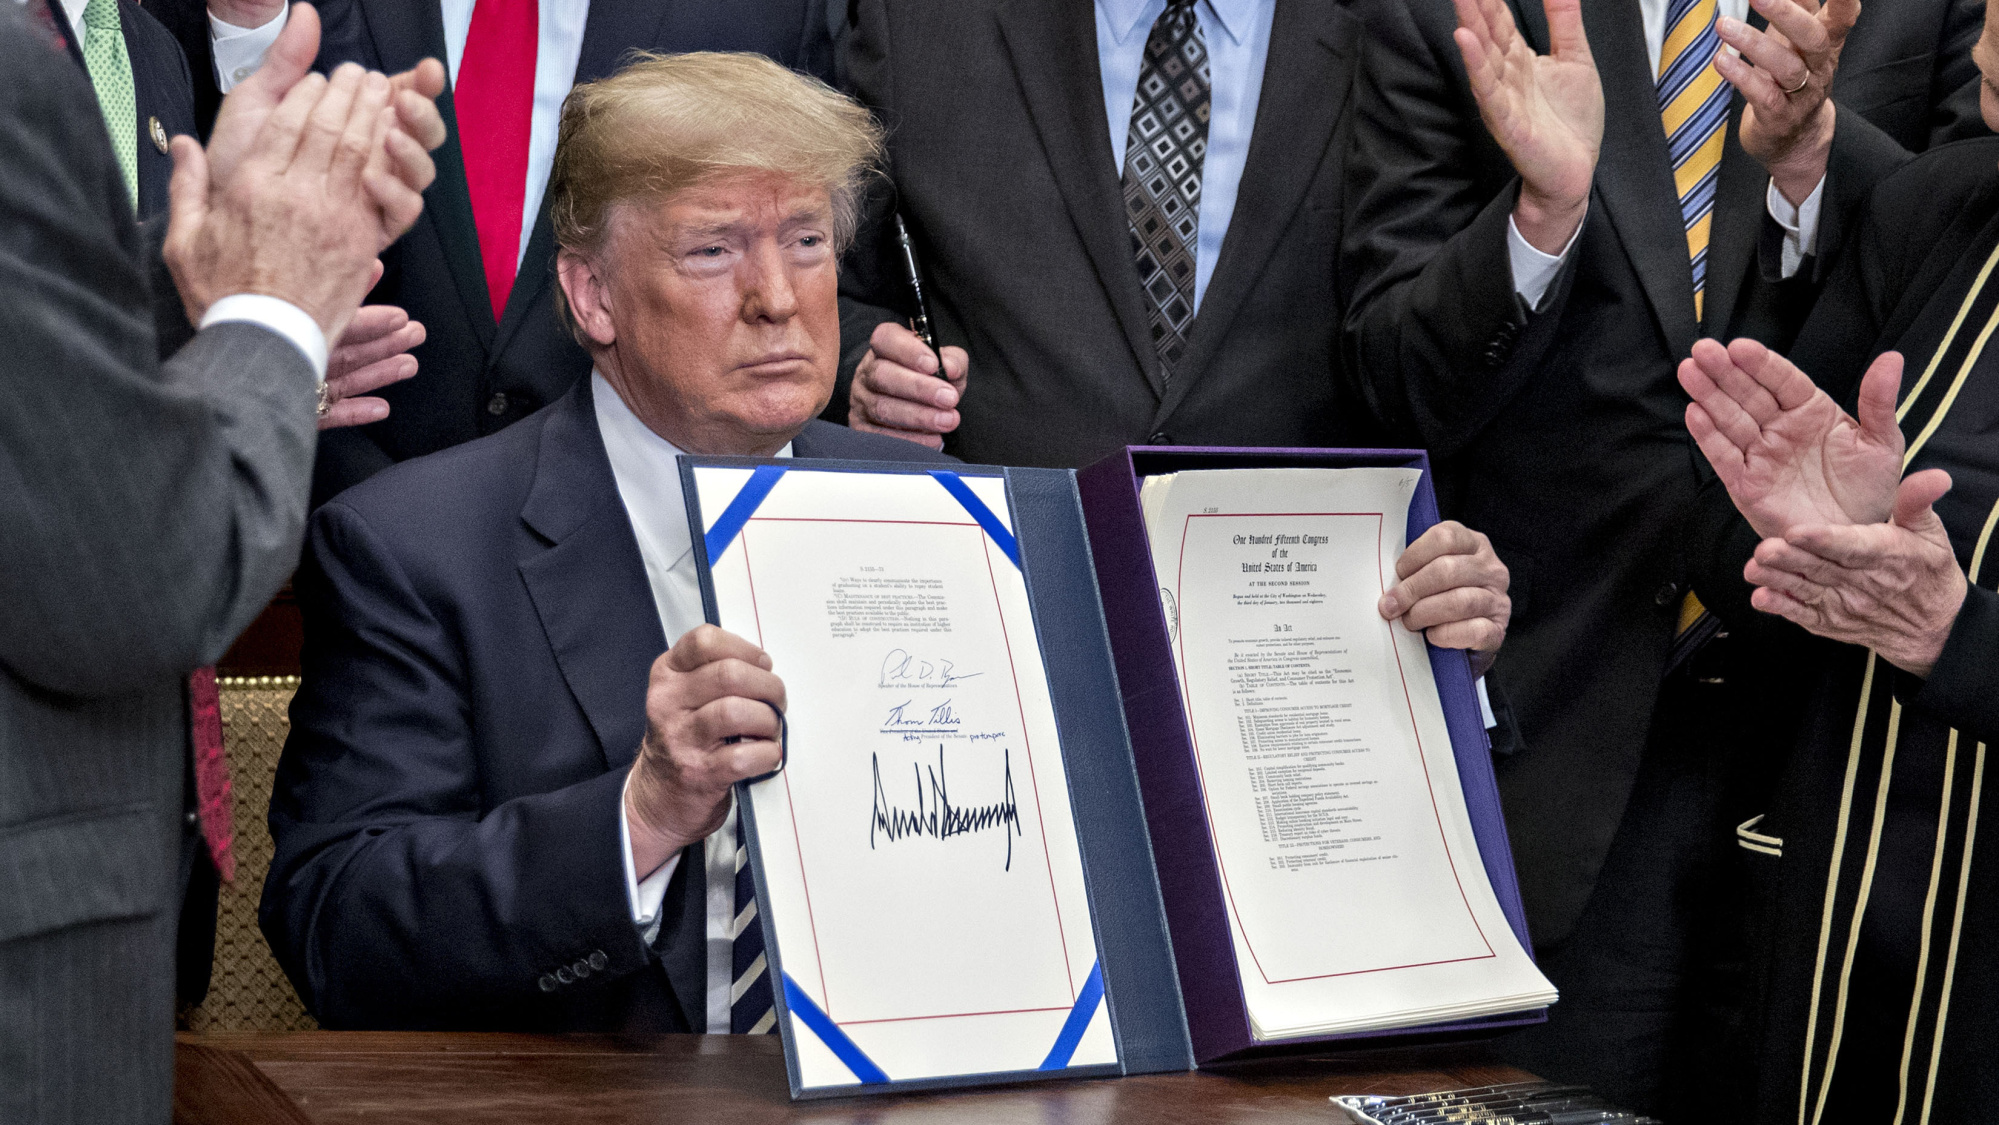 Trump Signs Biggest Rollback of Bank Rules Since Dodd-Frank